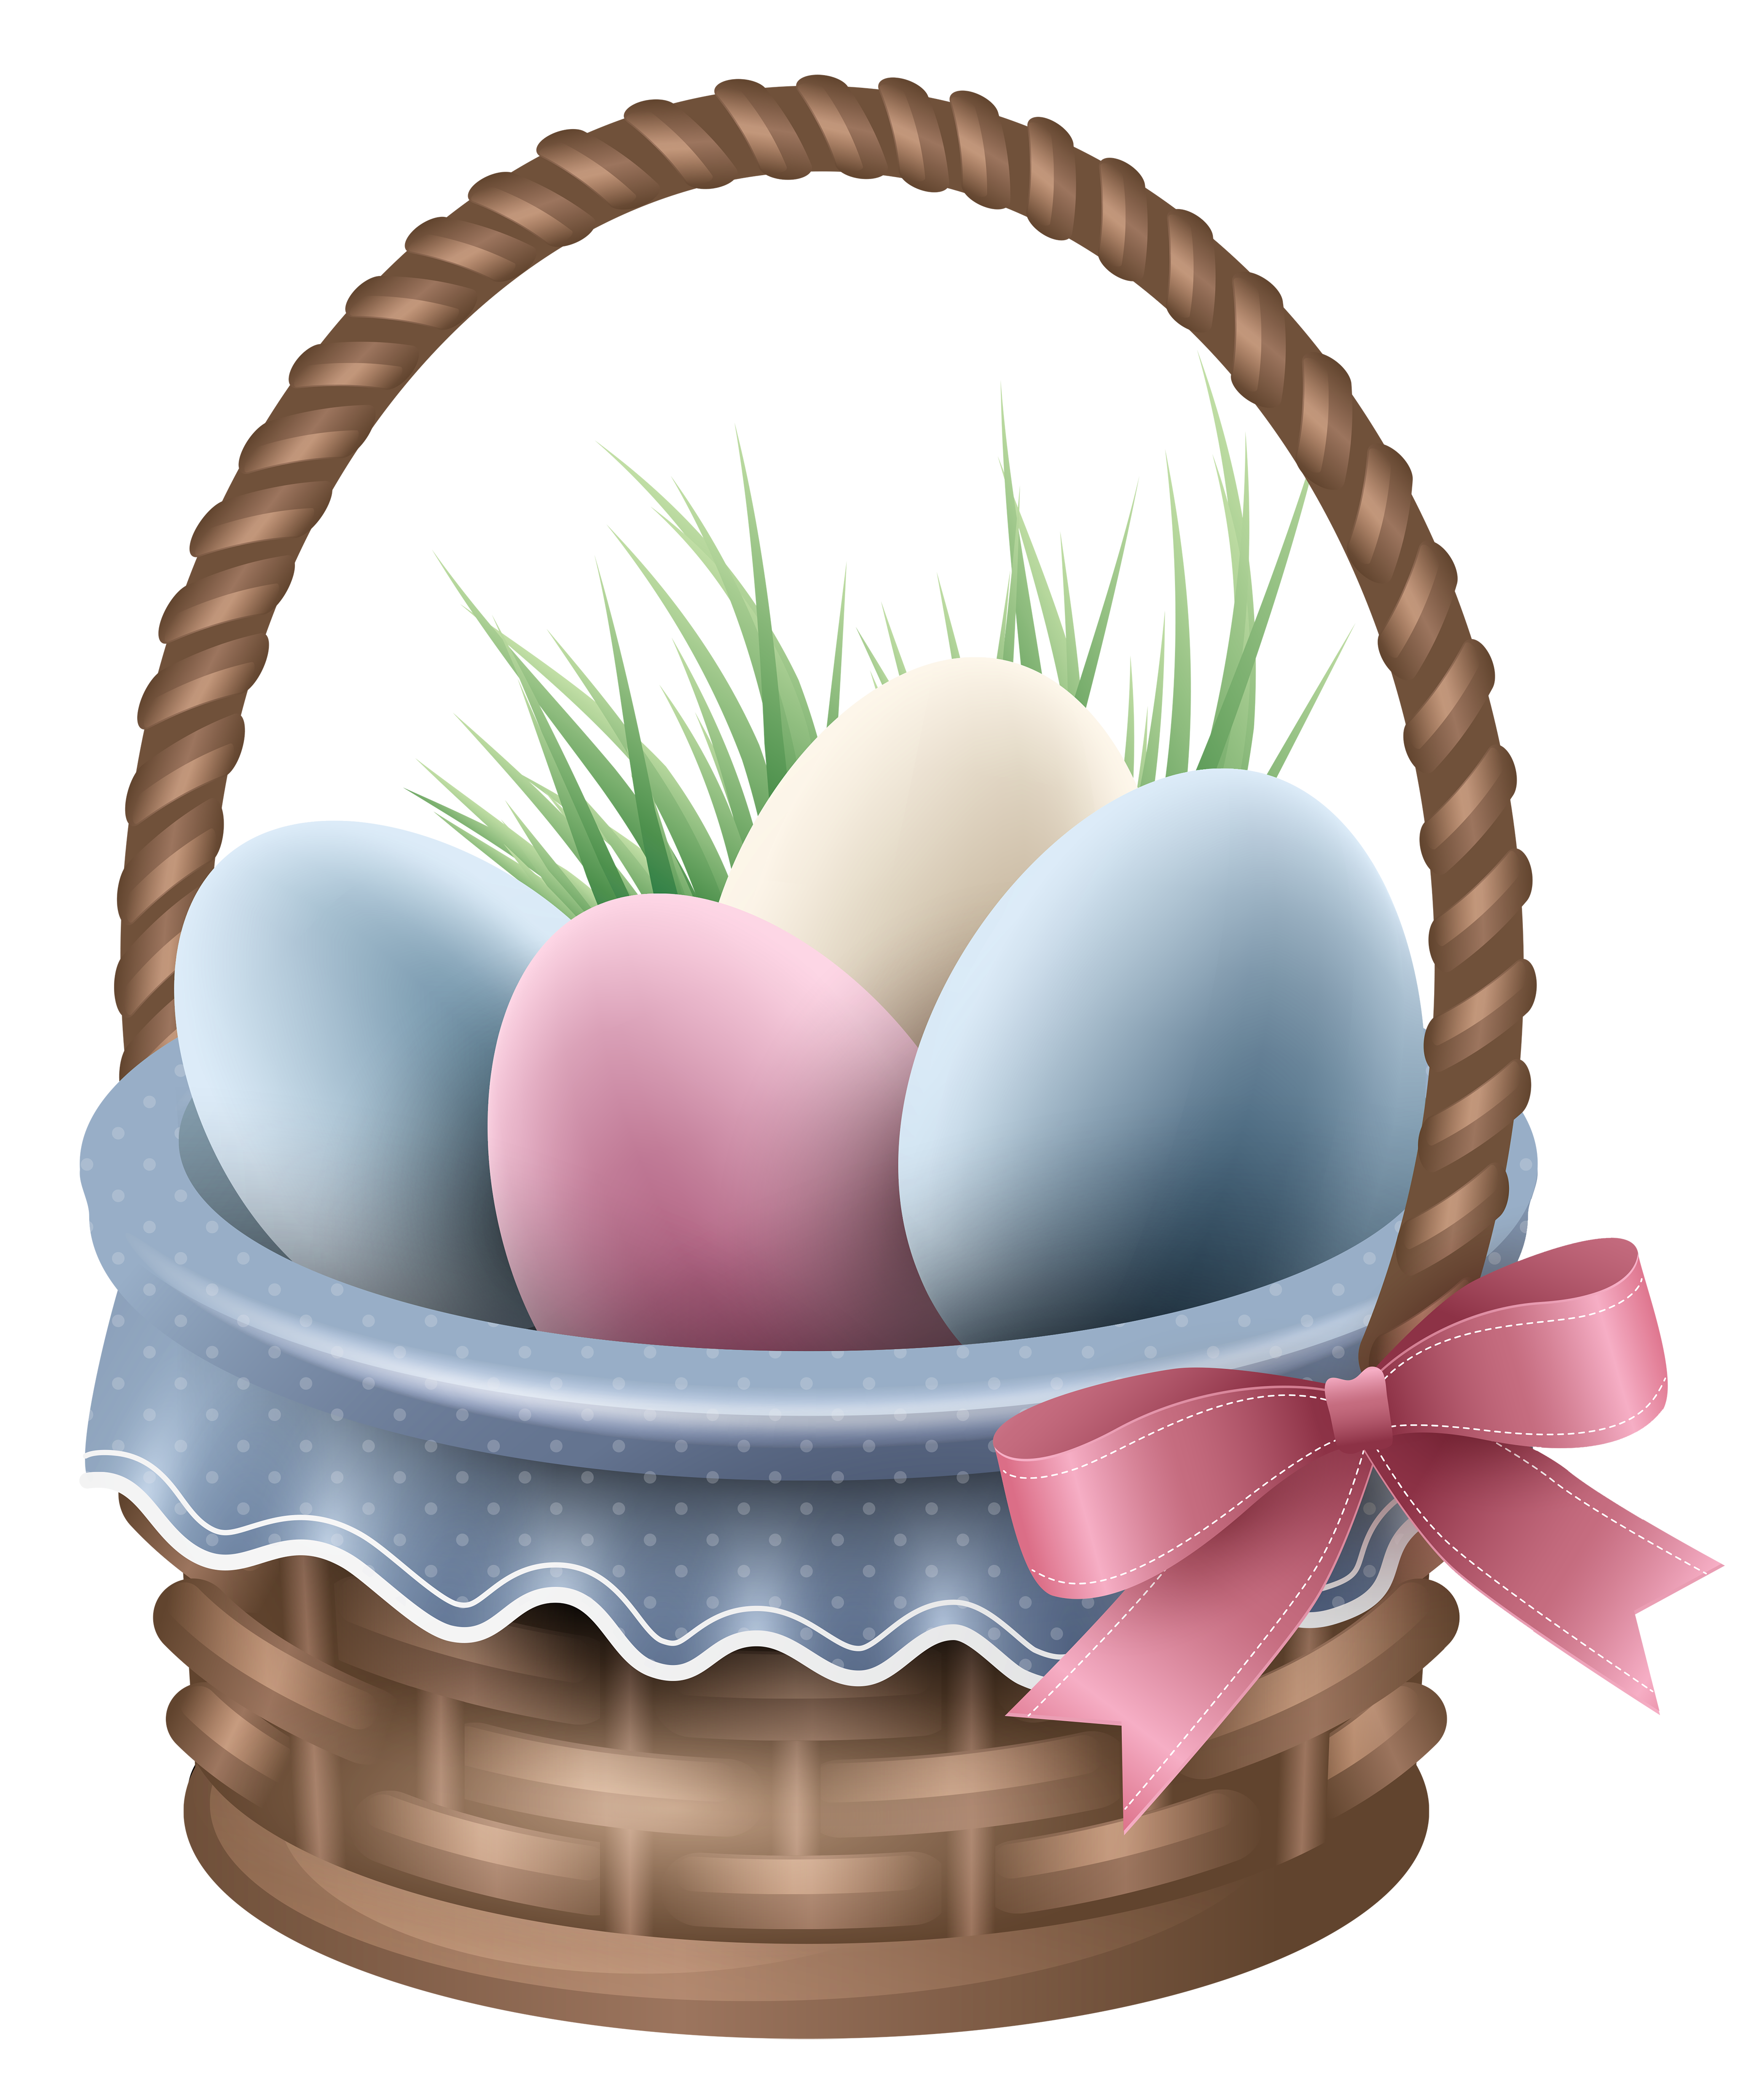 Easter basket png. Transparent and grass clipart